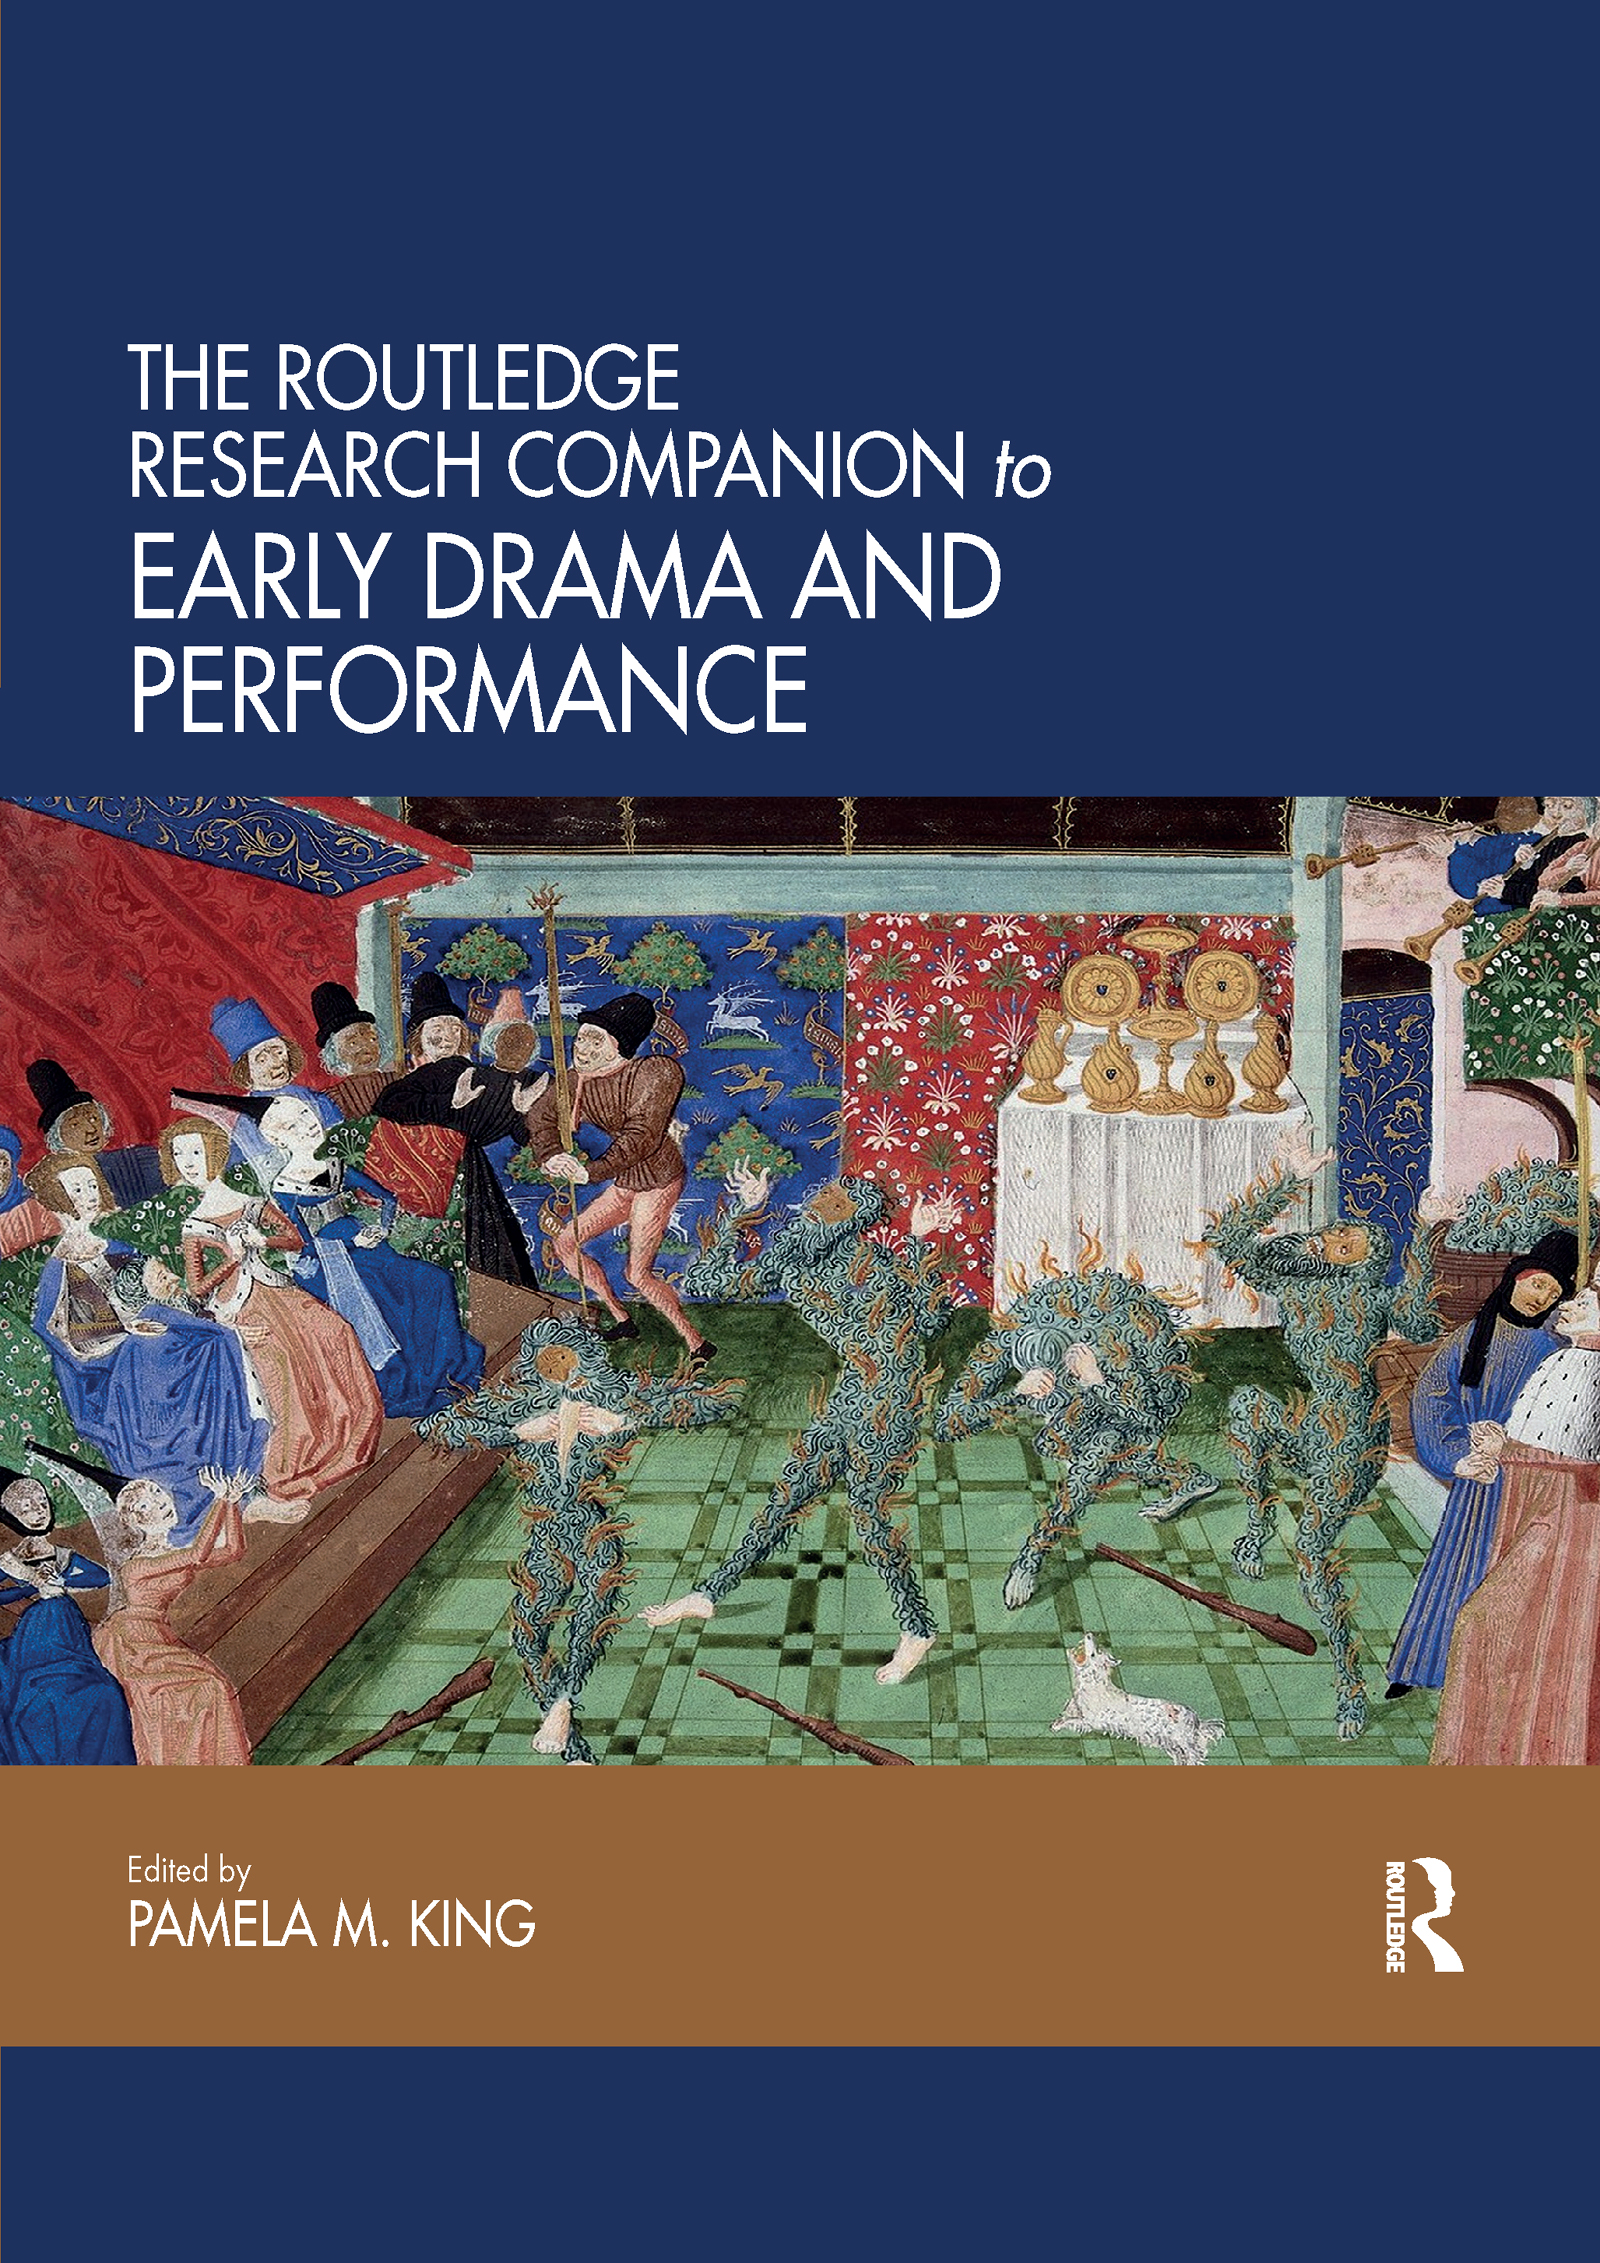 The Routledge Research Companion to Early Drama and Performance